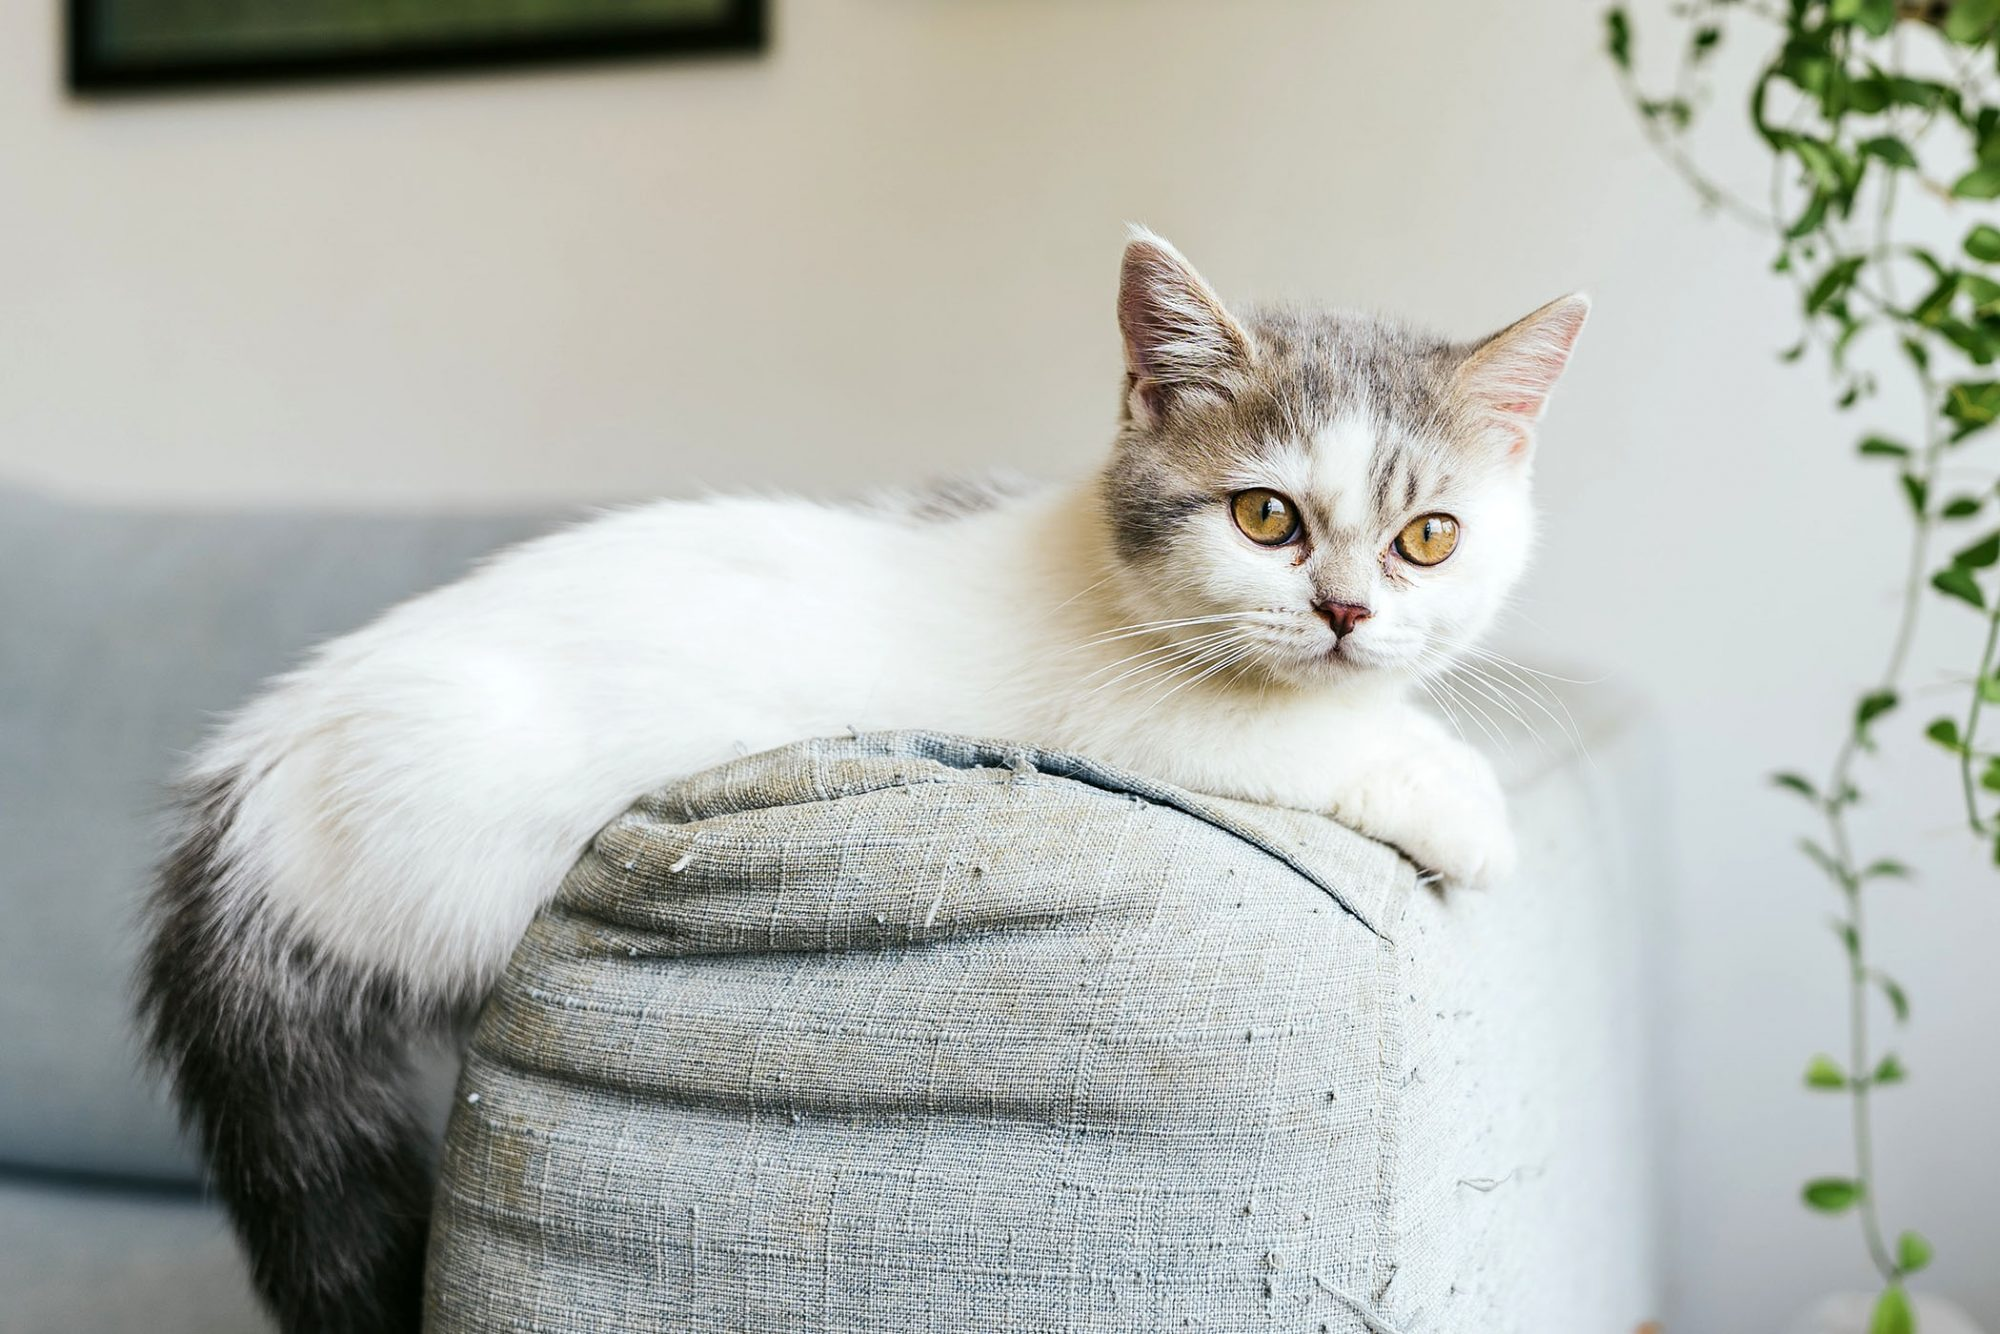 munchkin cat on couch